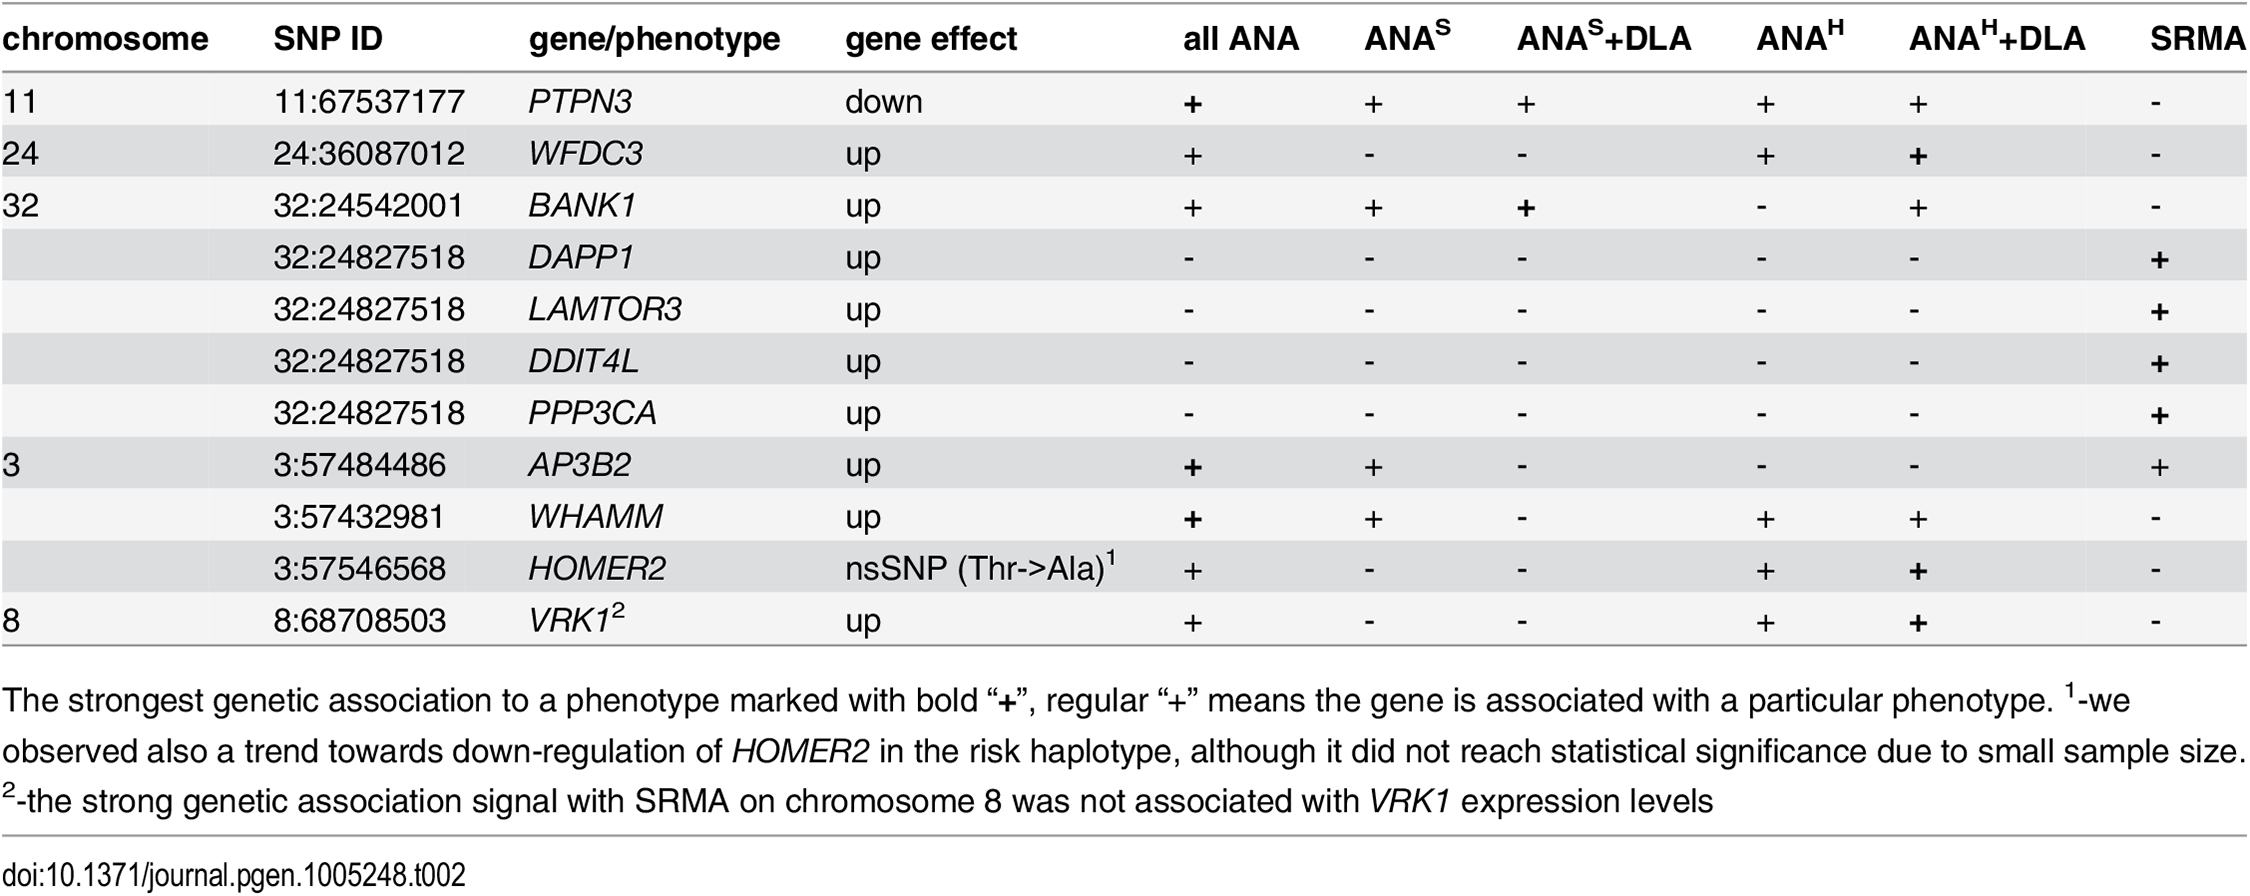 Genes associated with IMRD and SRMA phenotypes.